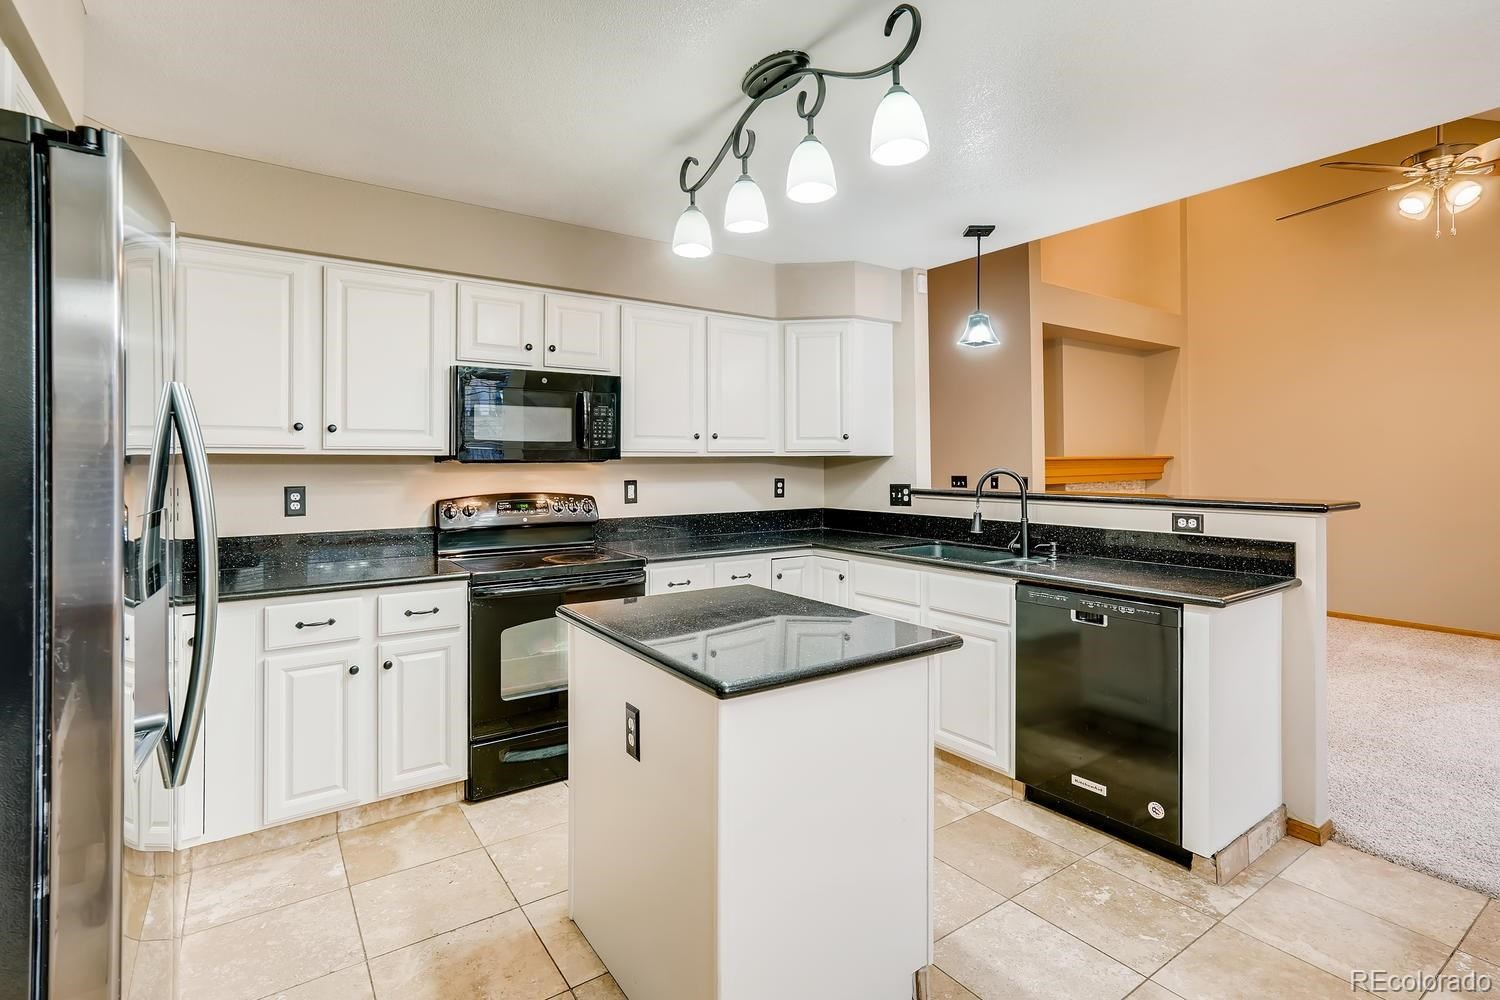 MLS# 6431155 - 8 - 6773 W 98th Circle, Westminster, CO 80021